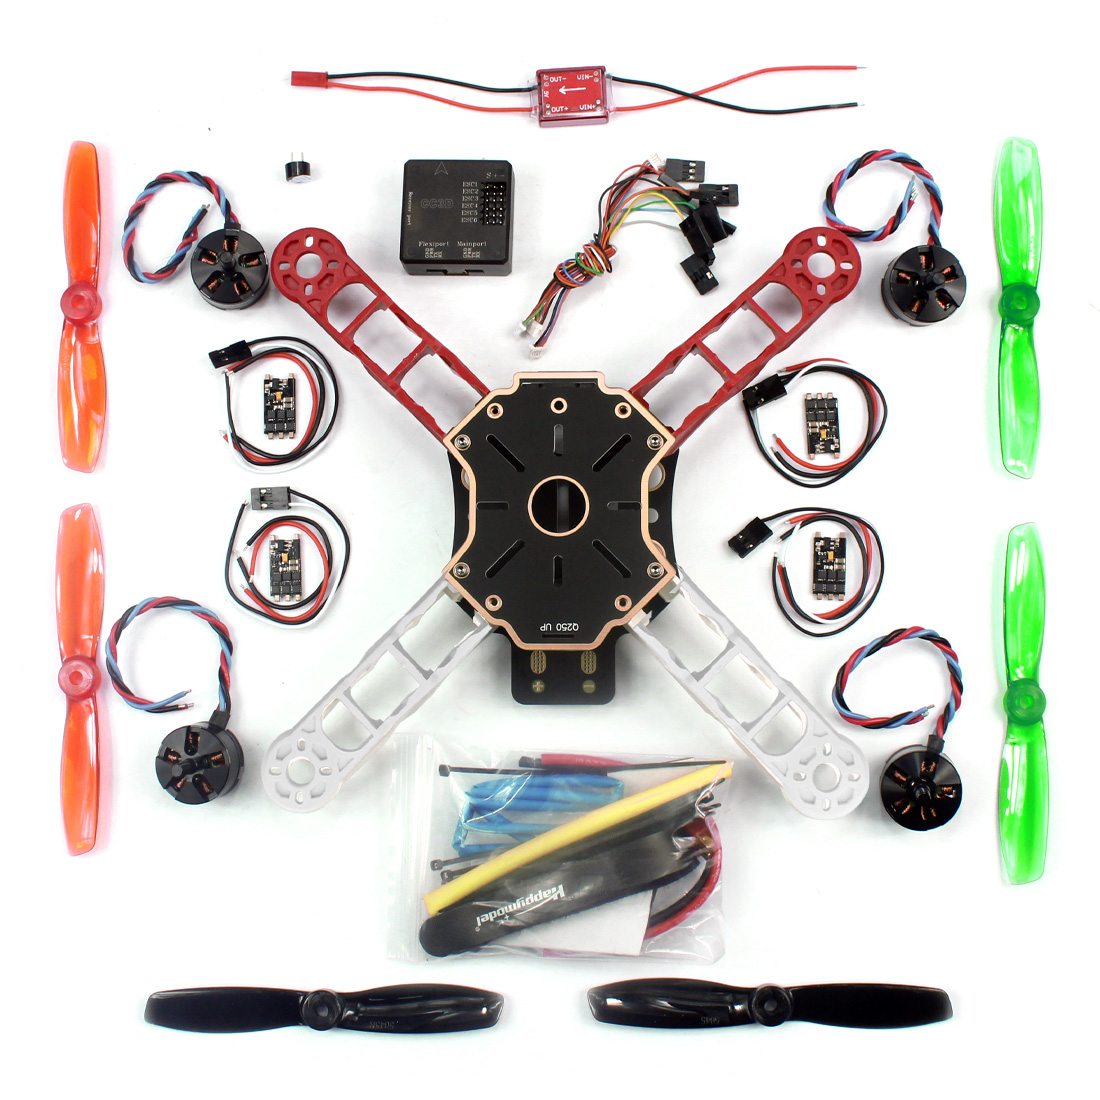 small resolution of f11069 mini 250 rc quadcopter combo arf q250 frame cc3d flight controller emax simon 12a esc brushless motor mt2204 cw ccw fs in parts accessories from